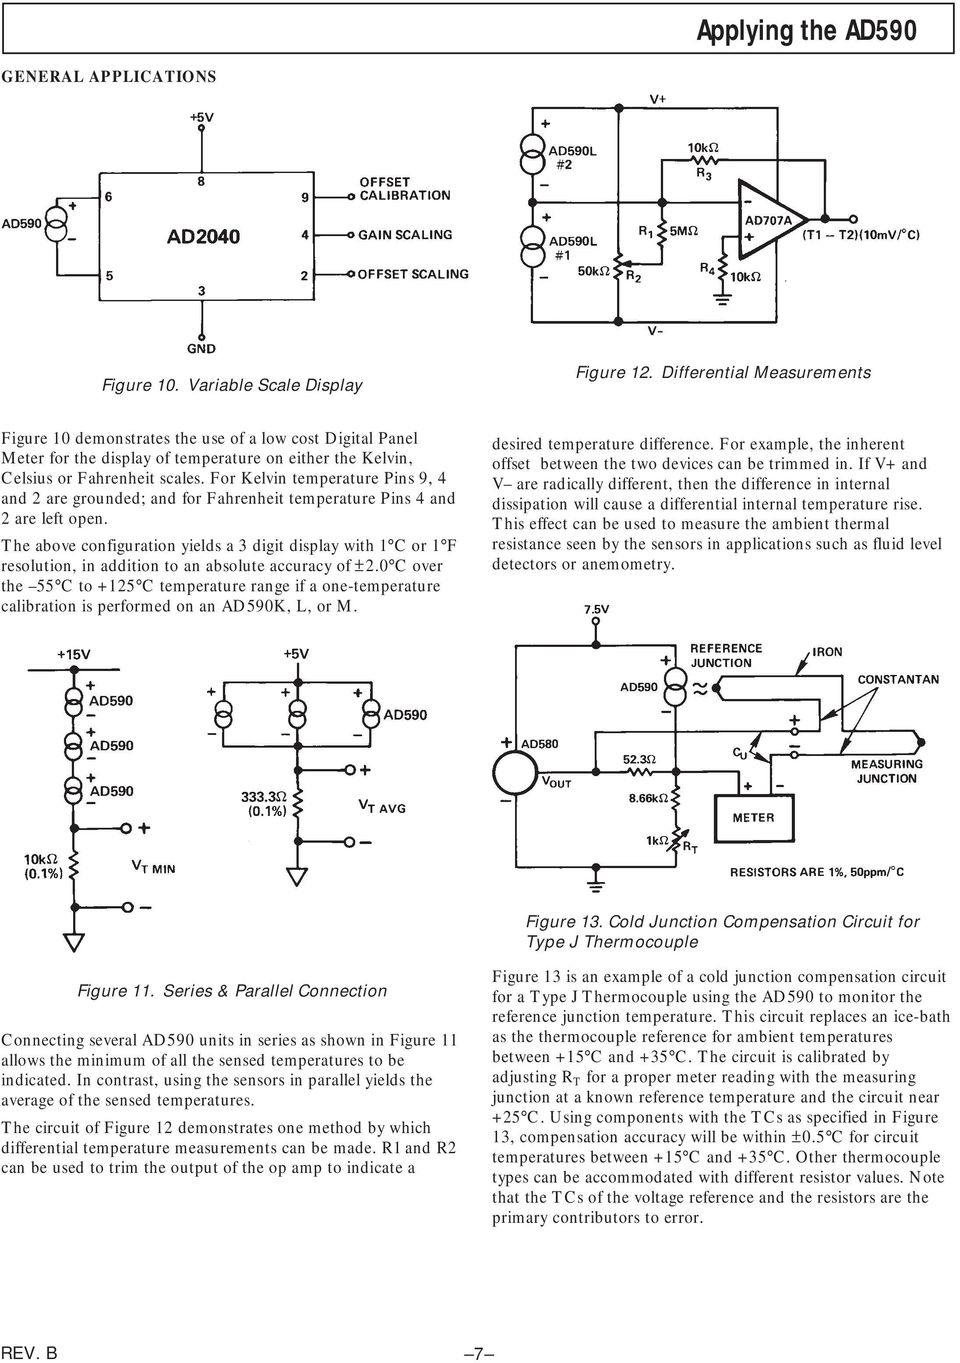 Two Terminal Ic Temperature Transducer Ad590 Pdf The Lm3914 Is A Monolithic Integrated Circuit That Senses Analog For Kelvin Pins 9 4 And 2 Are Grounded Fahrenheit